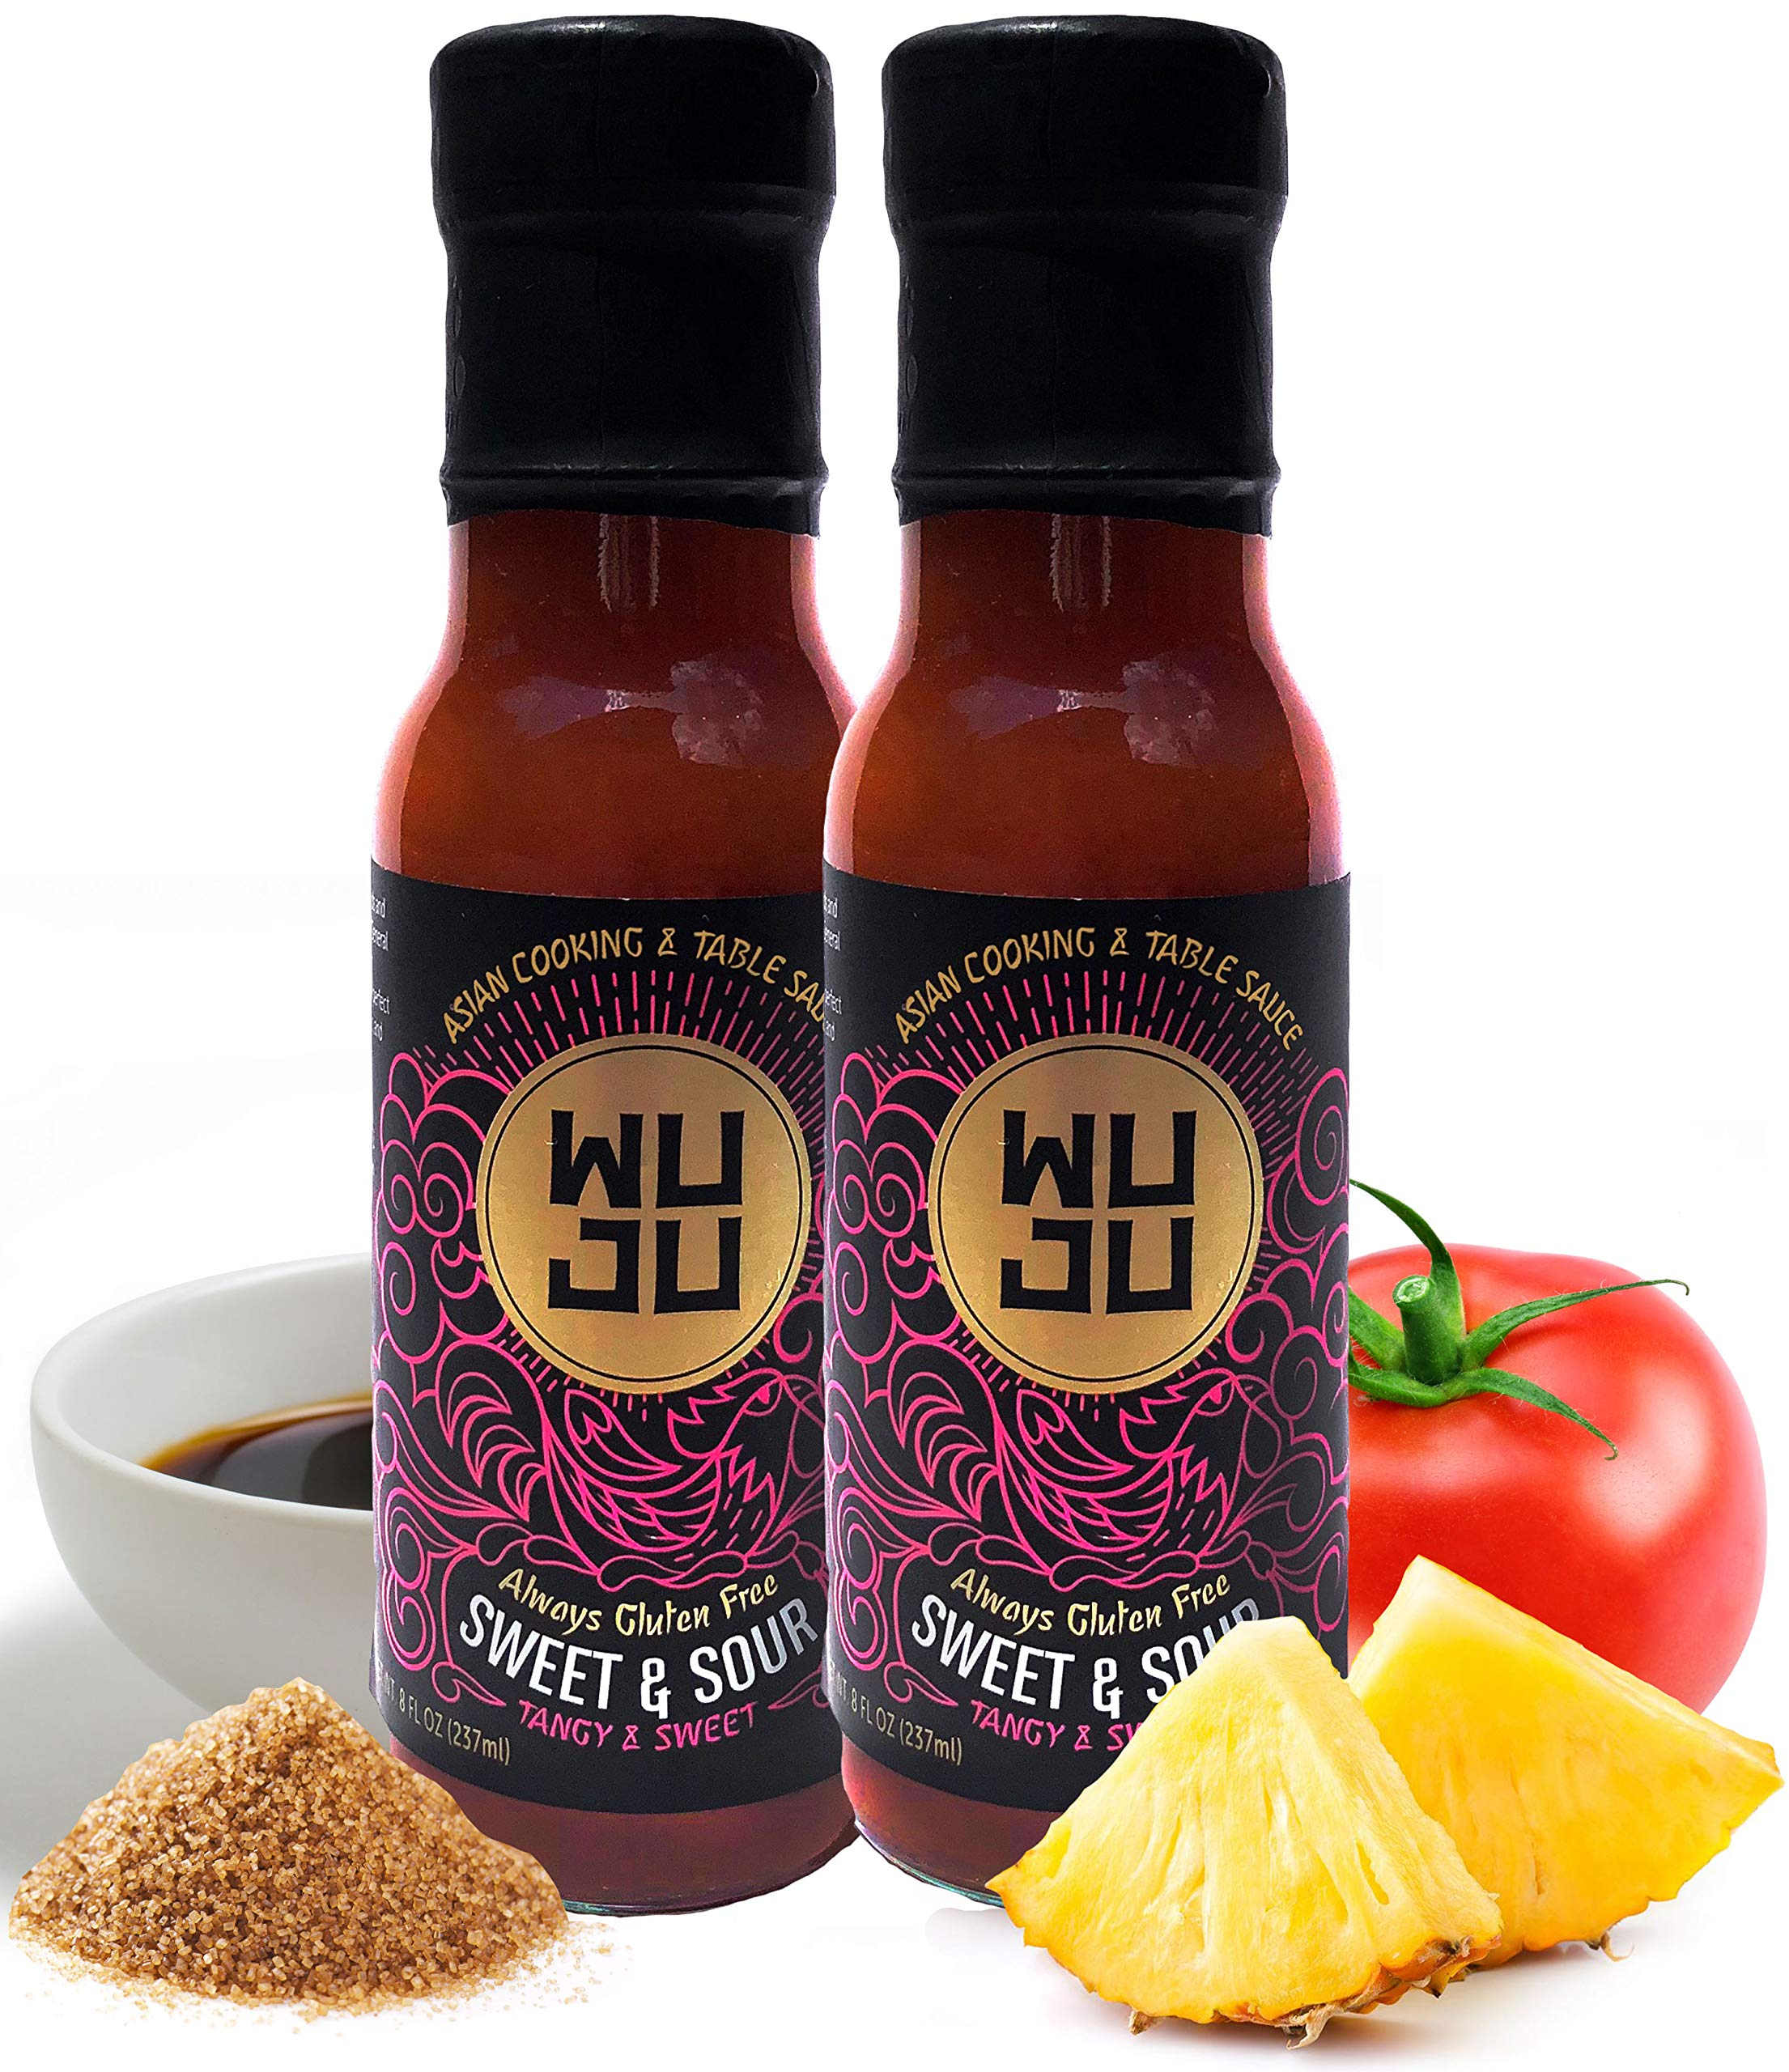 WUJU Sweet And Sour Sauce - Naturally Gluten Free Sweet Sour Sauce - Traditional Recipe, No Preservatives - Authentic Sweet N Sour Sauce With All Natural Ingredients - 2 x 8 Ounces by WUJU